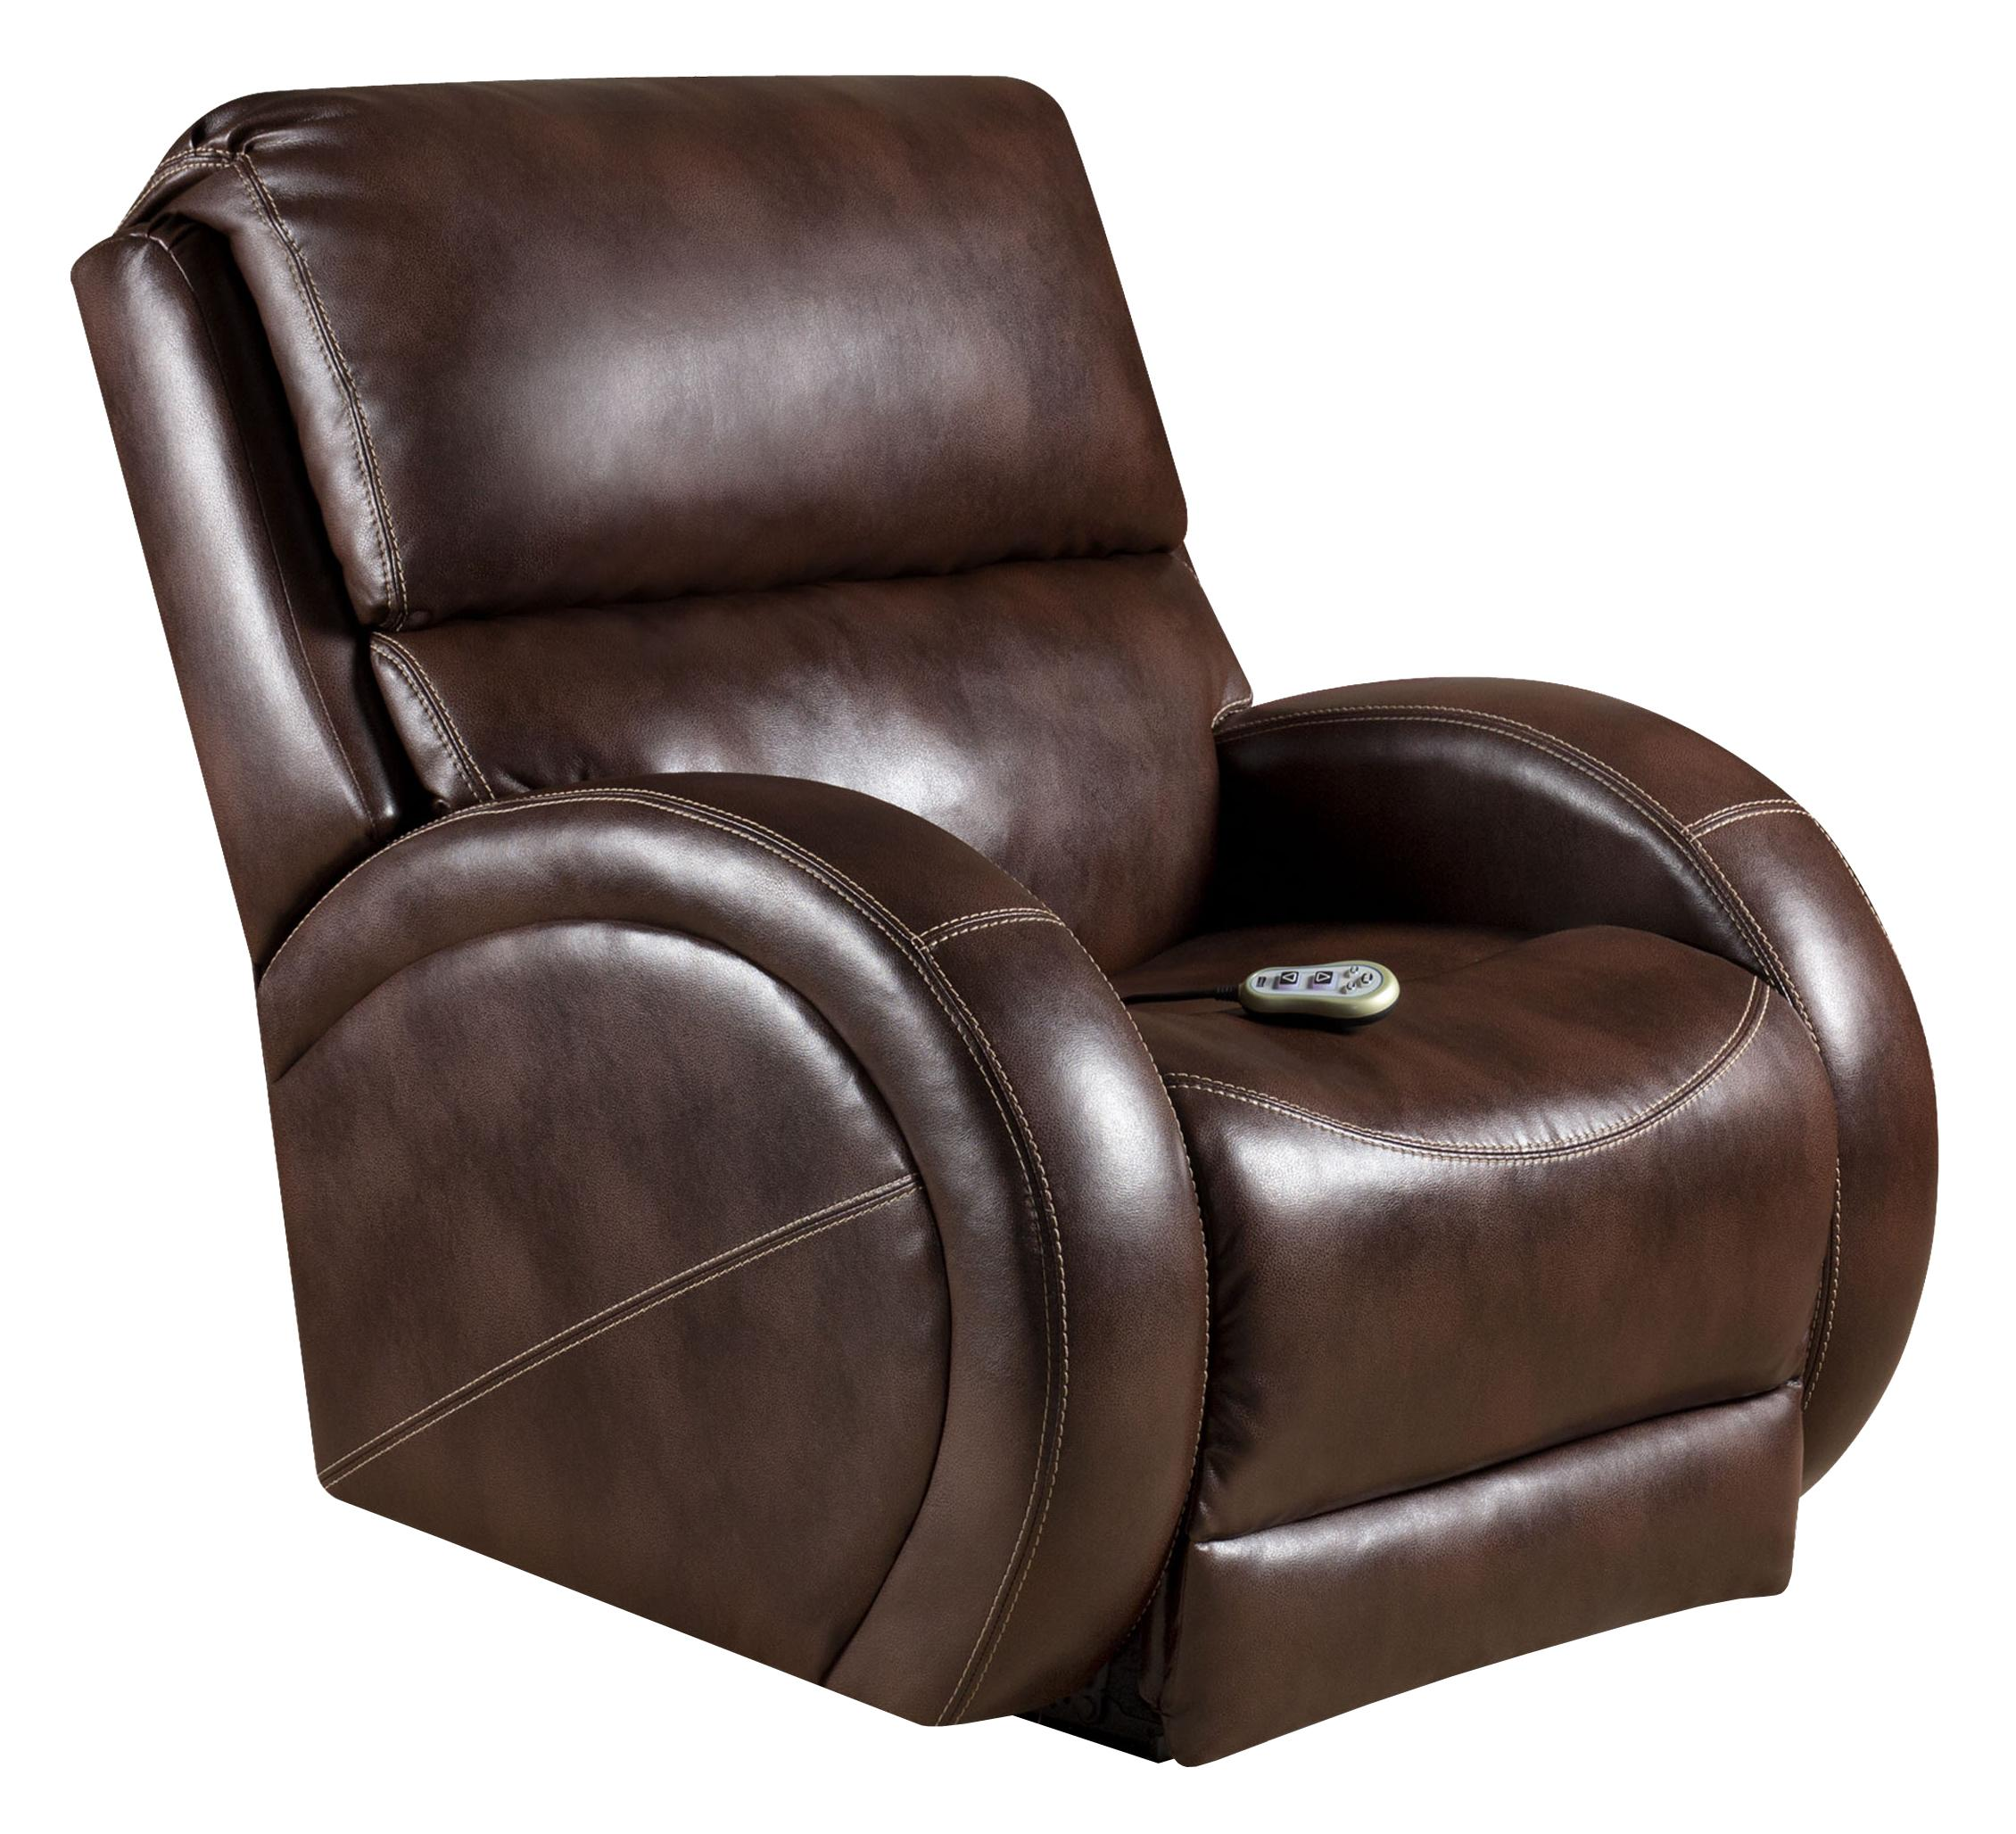 American Furniture Recliners  Rocker Recliner - Item Number: 9490-8570